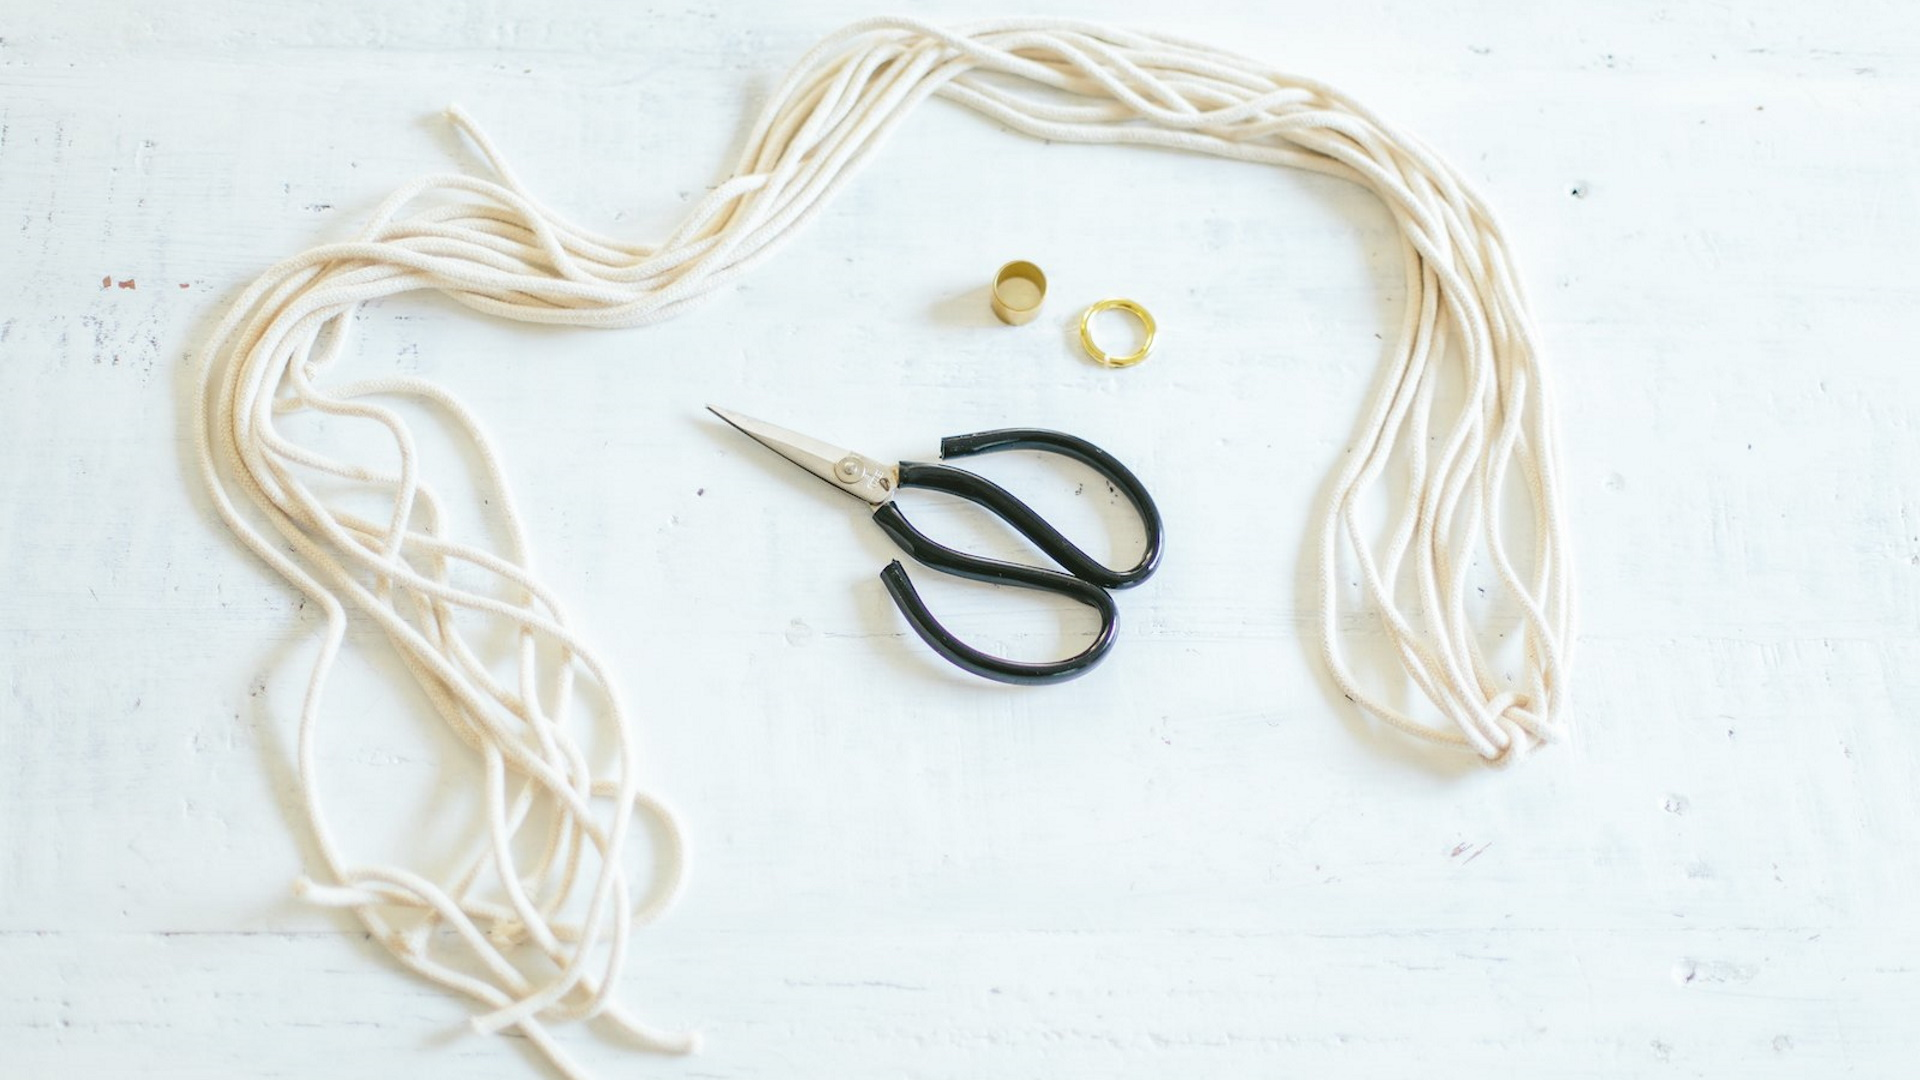 Macrame cord and scissors